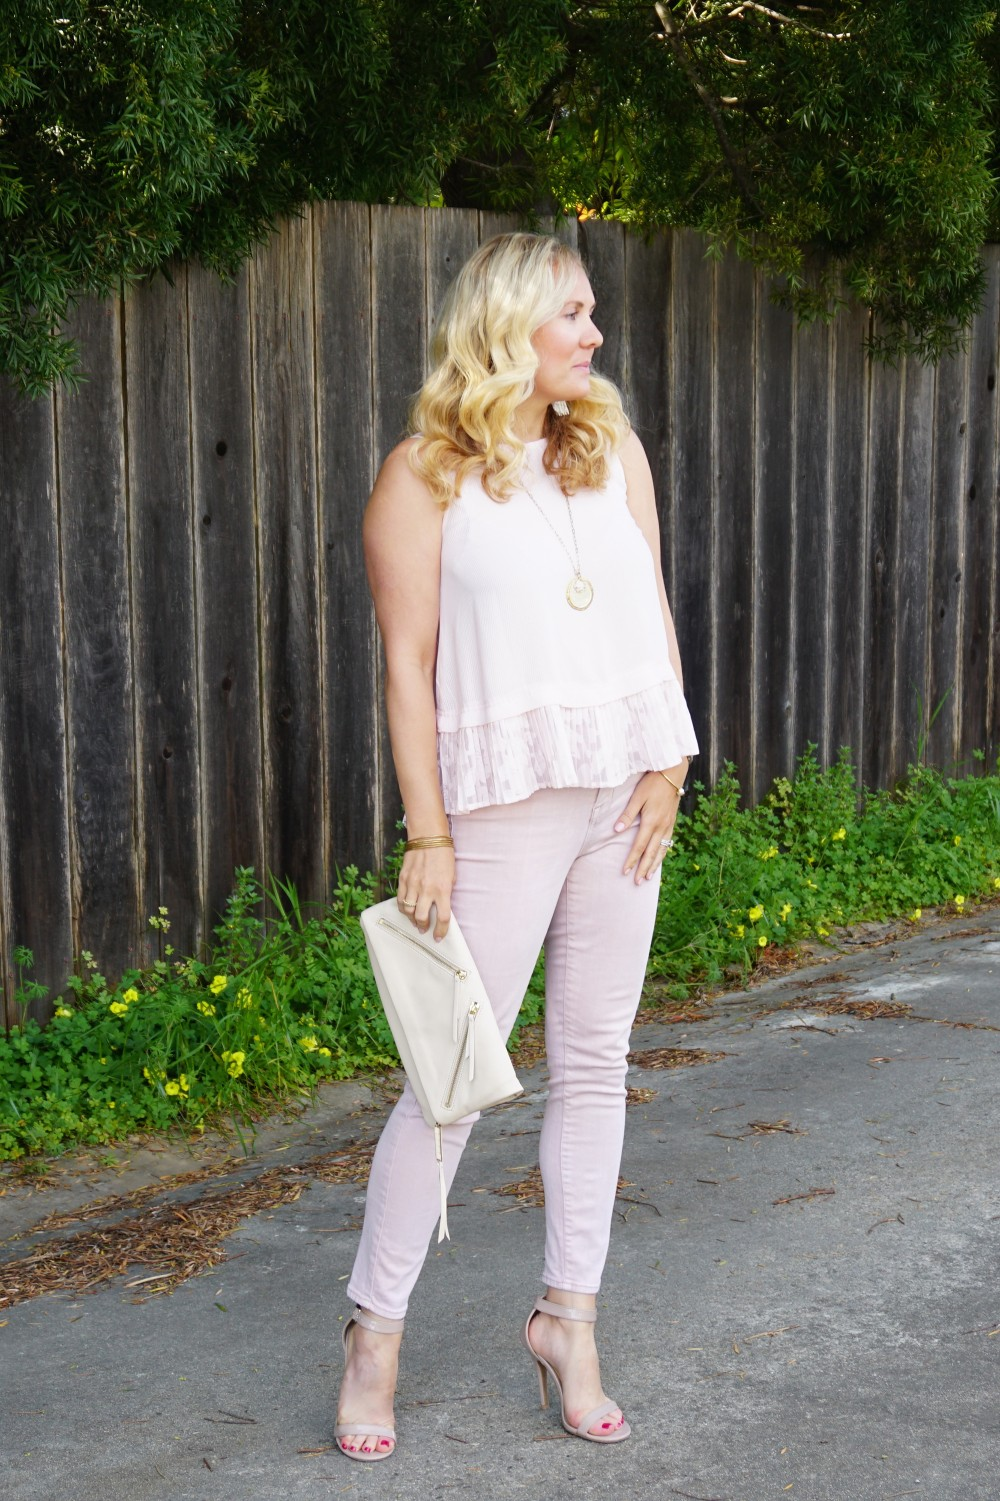 Blush Pink Easter Outfit-Easter Outfit Idea-Target Style-Who What Wear for Target-Outfit Inspiration-Have Need Want 2